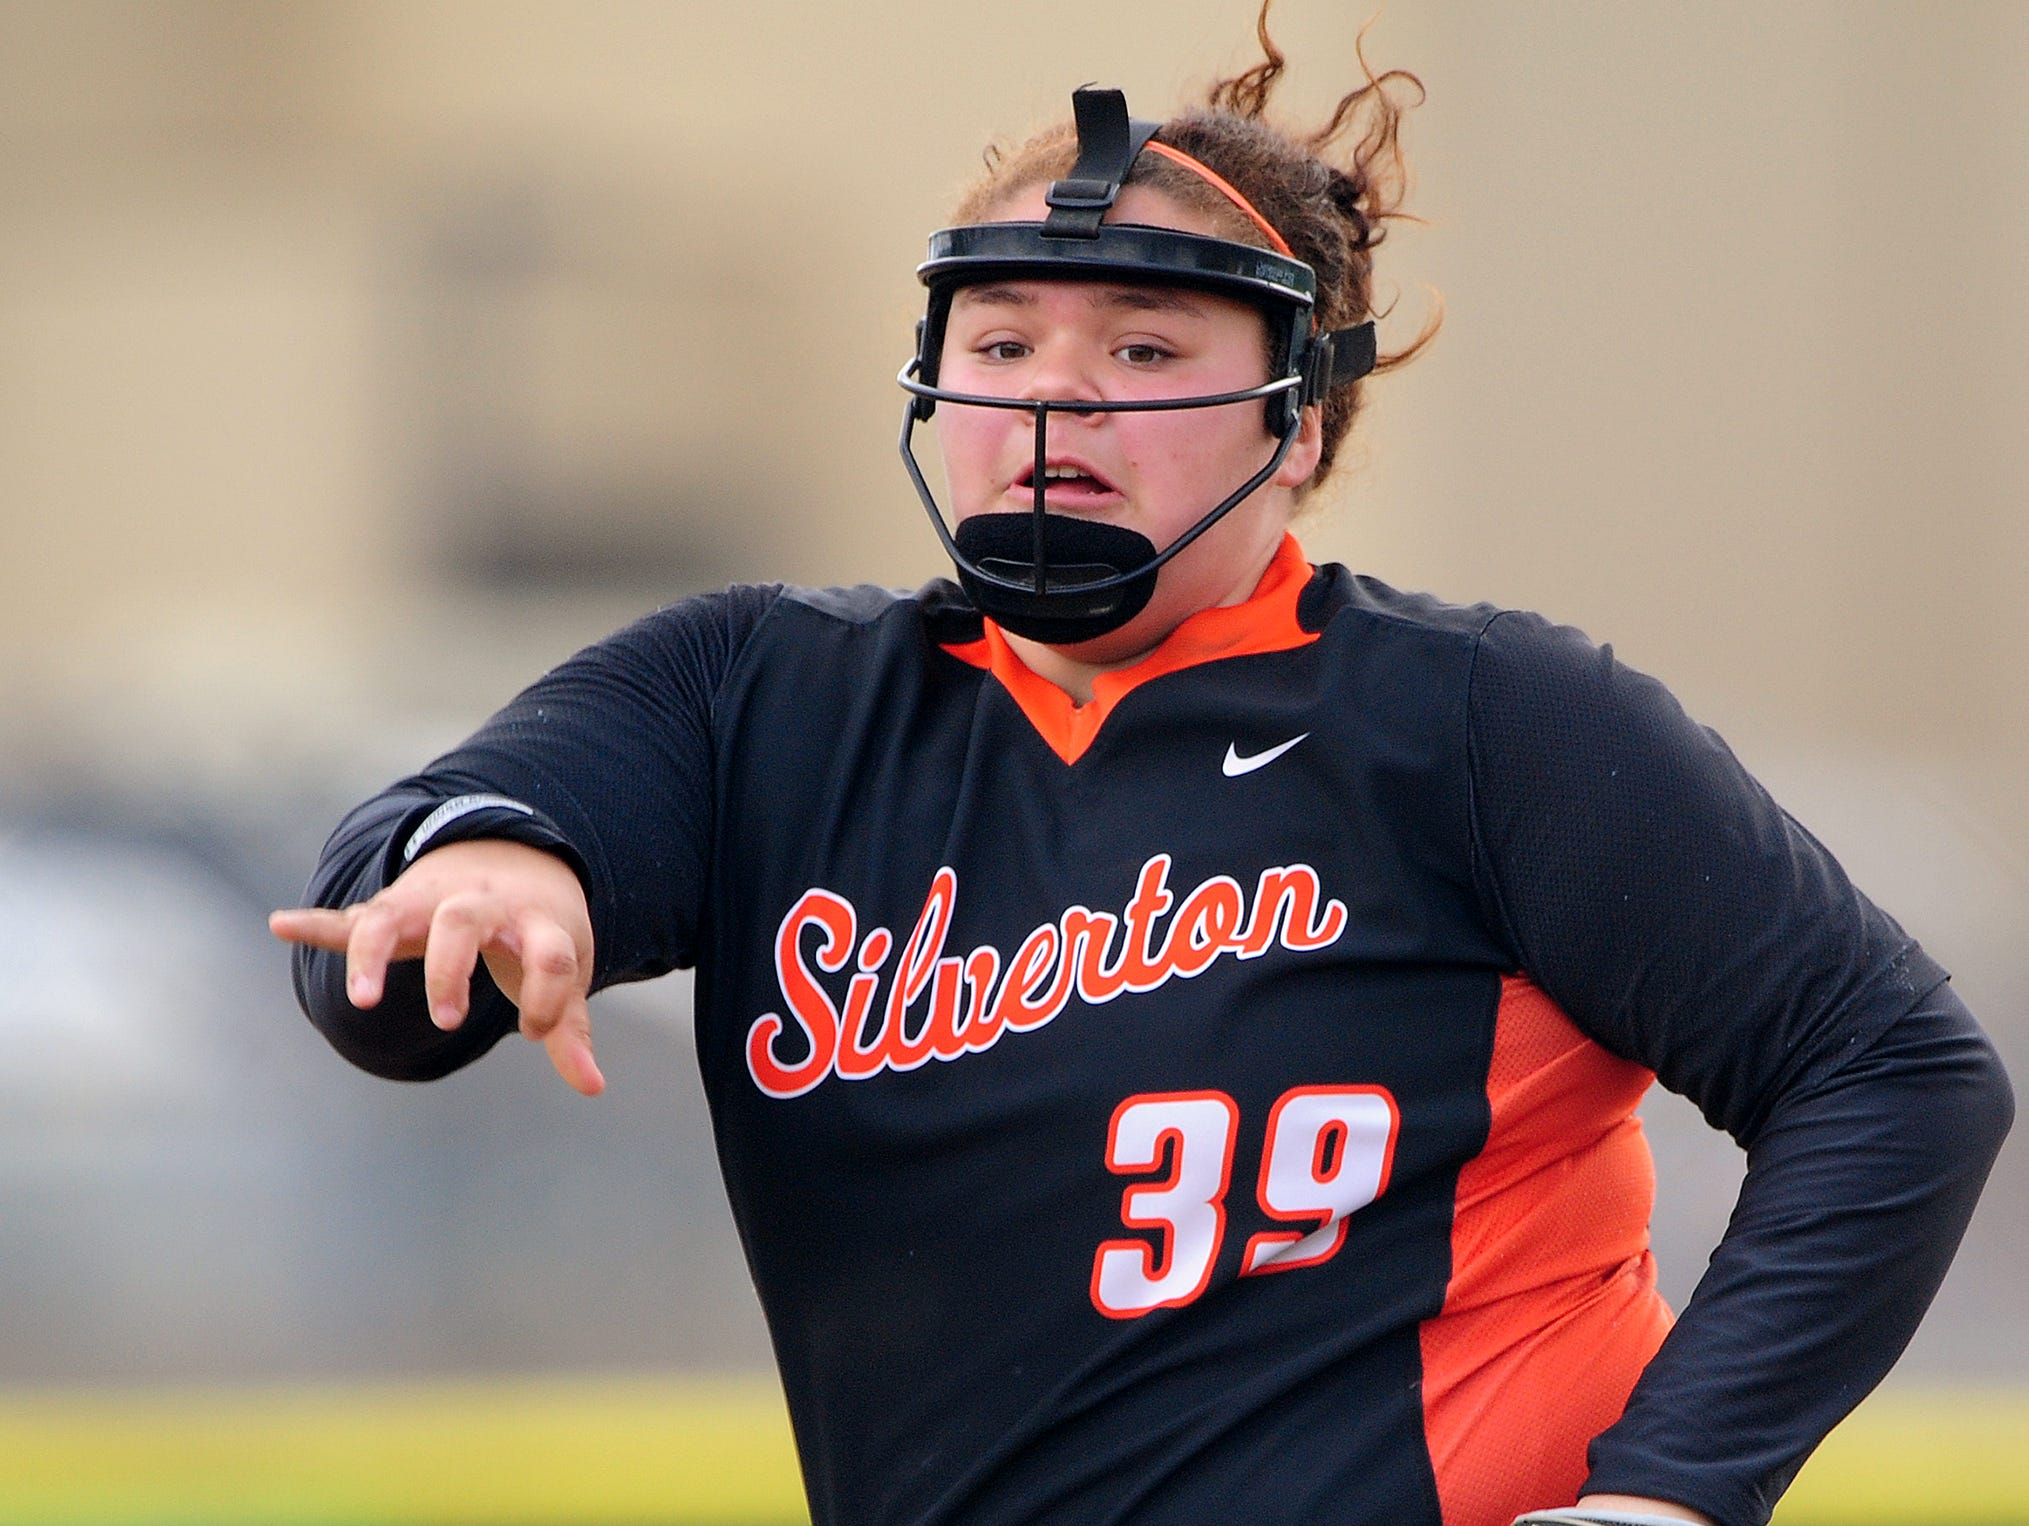 Silverton pitcher Alex Molloy was selected as the athlete of the week